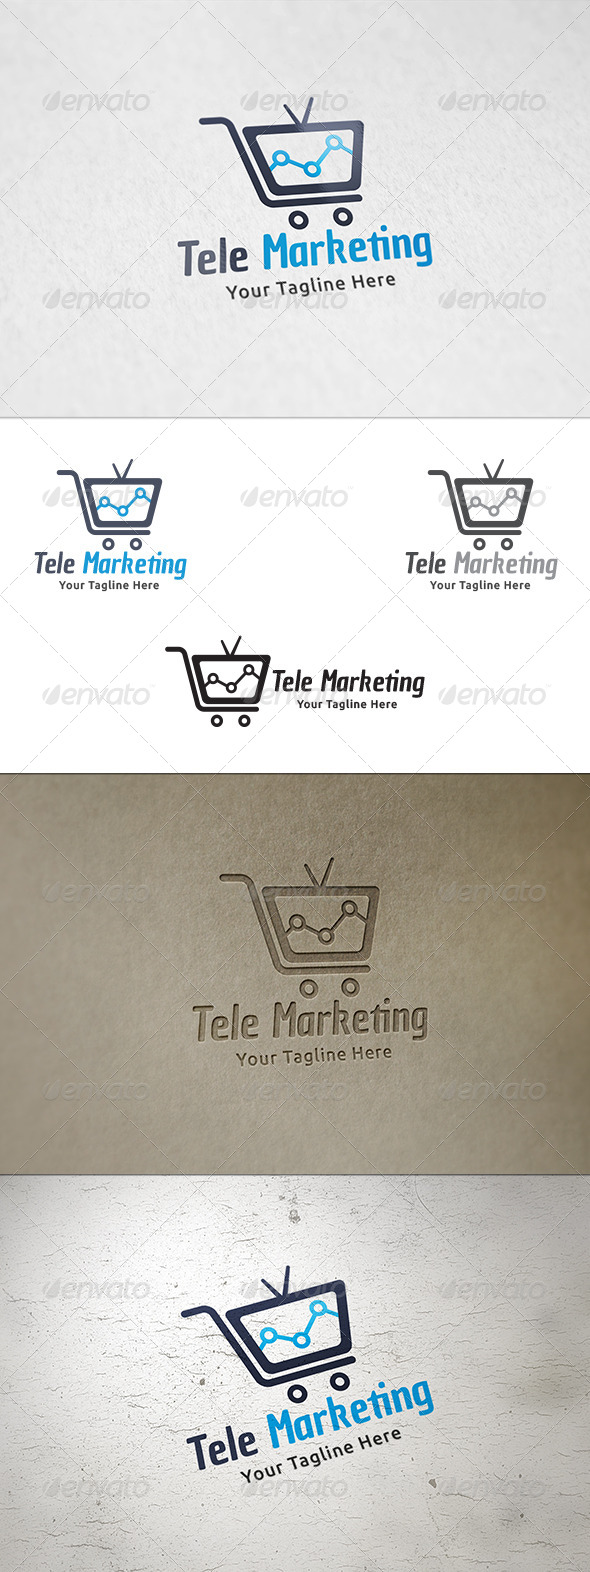 GraphicRiver Tele Marketing Logo Template 8406845